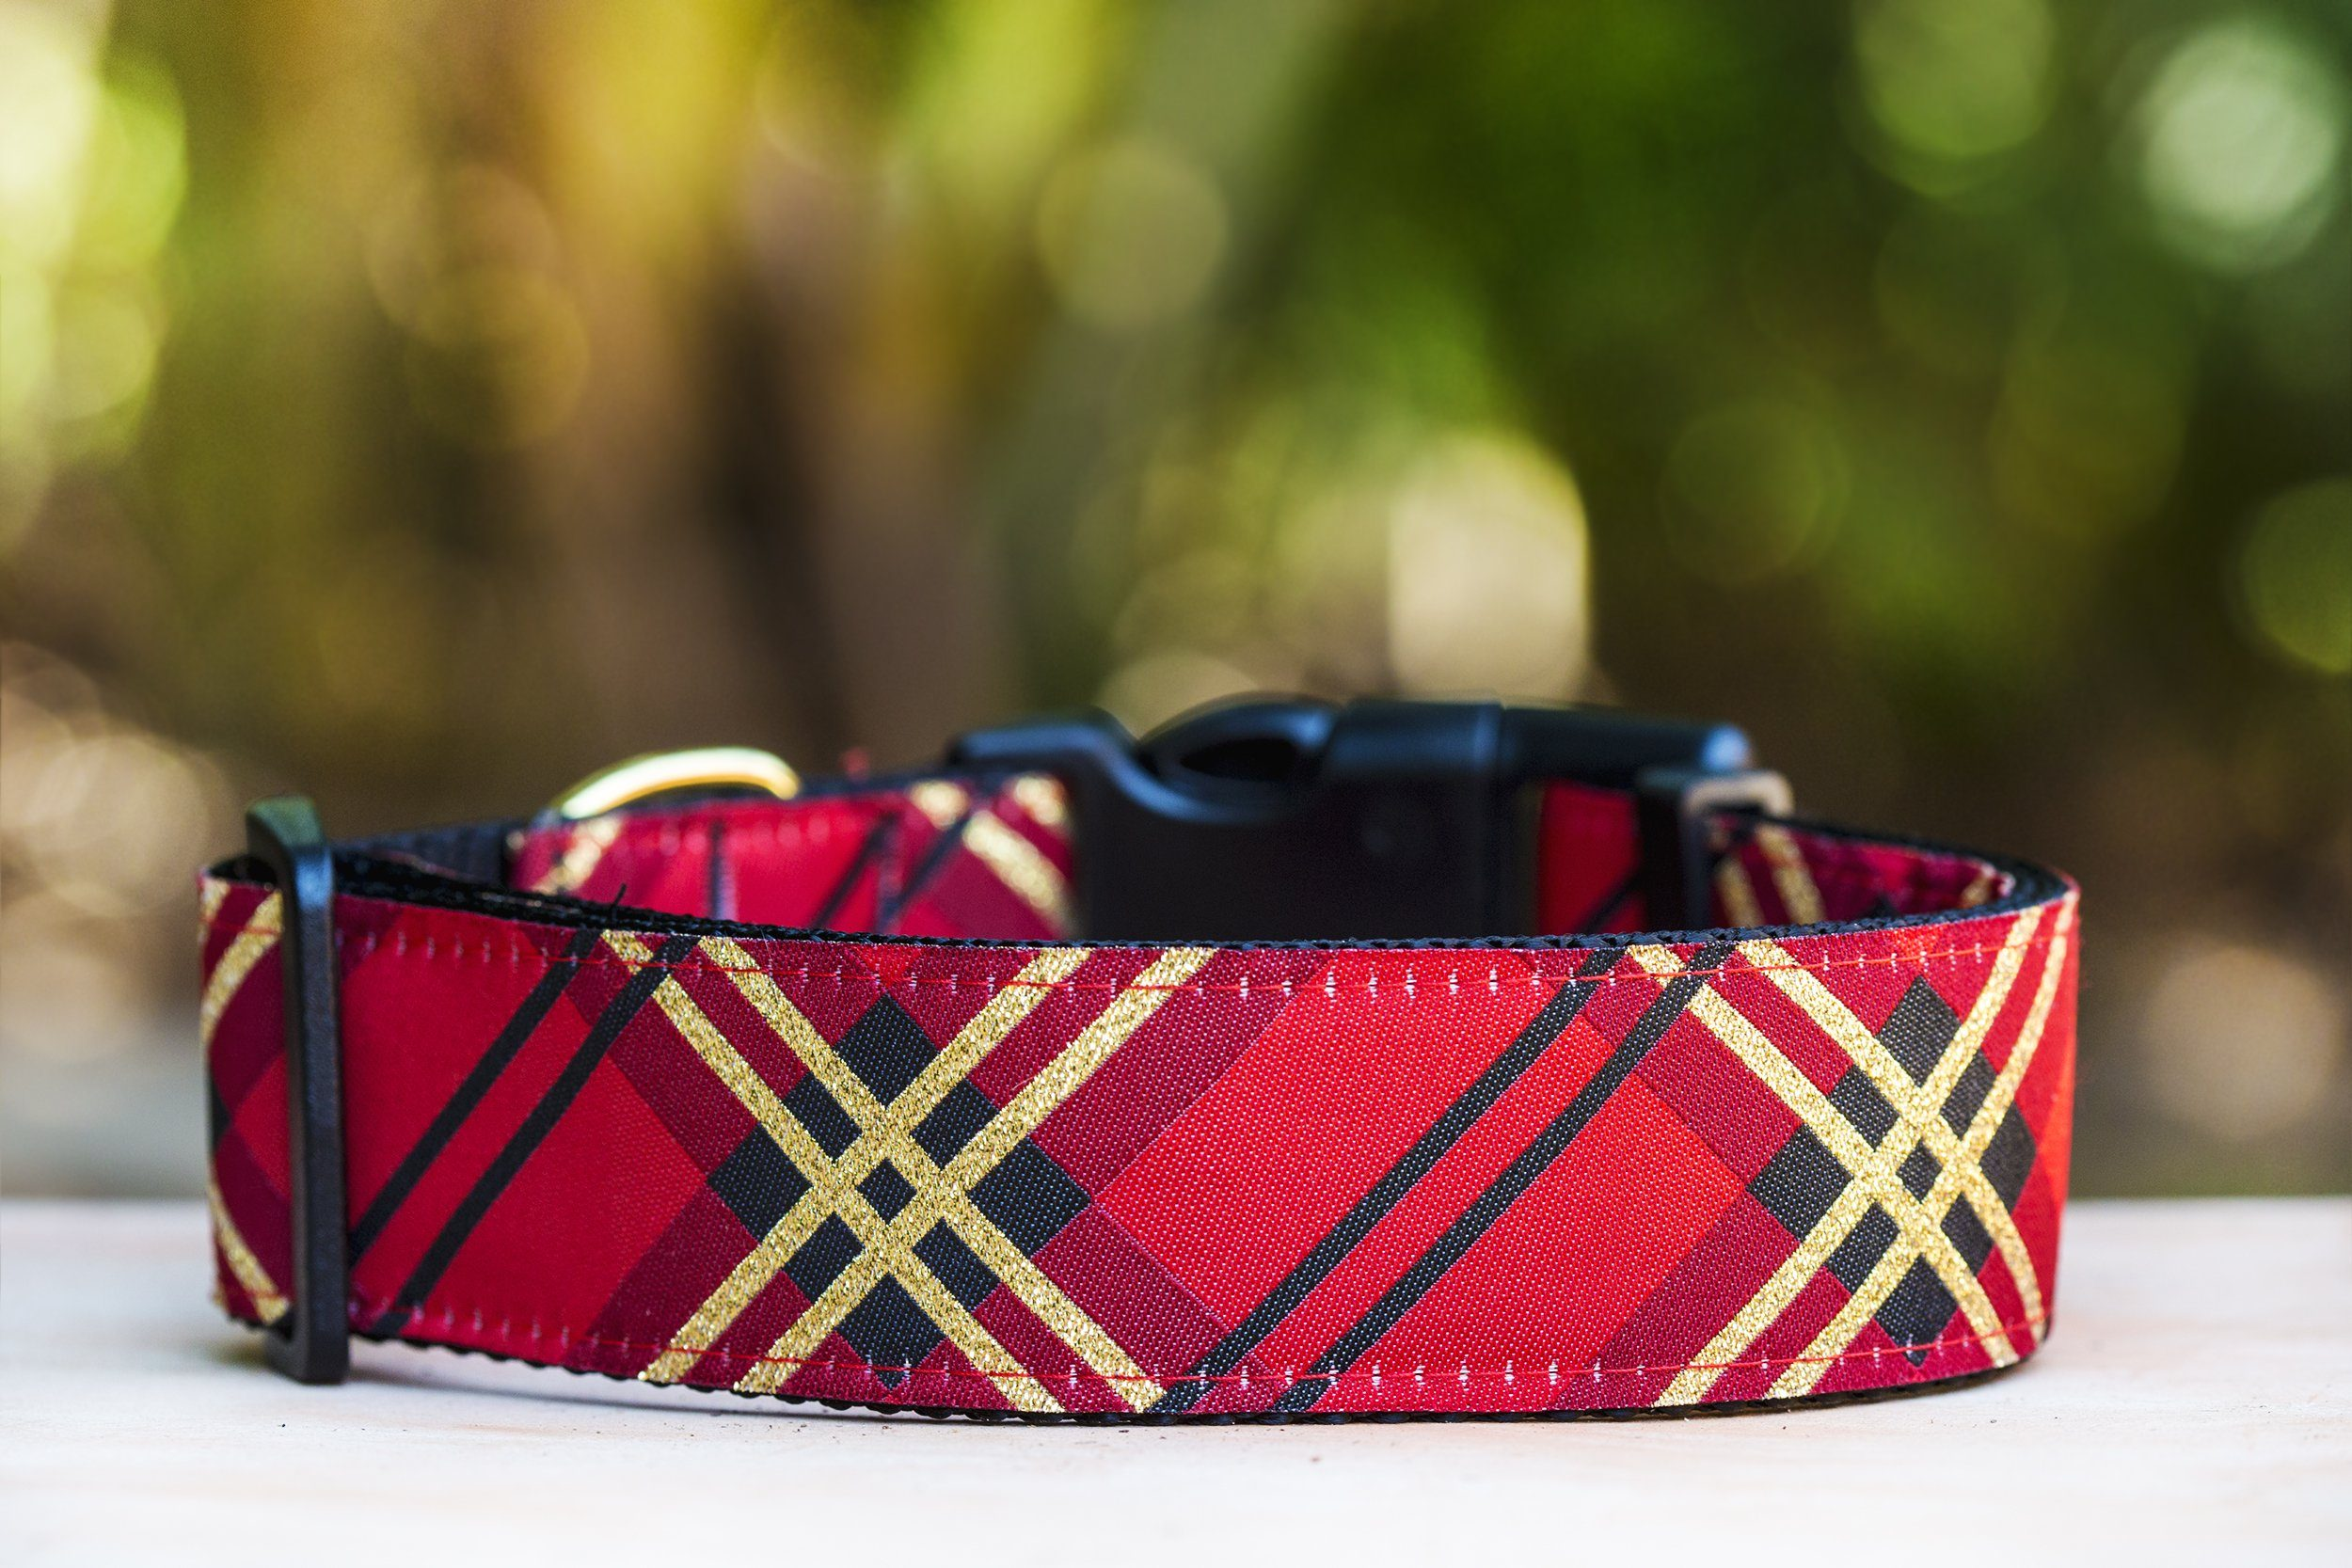 a red and gold dog collar, with woven gold glitter throughout. Handmade in Australia, this dog collar is a beautiful addition for larger dogs.